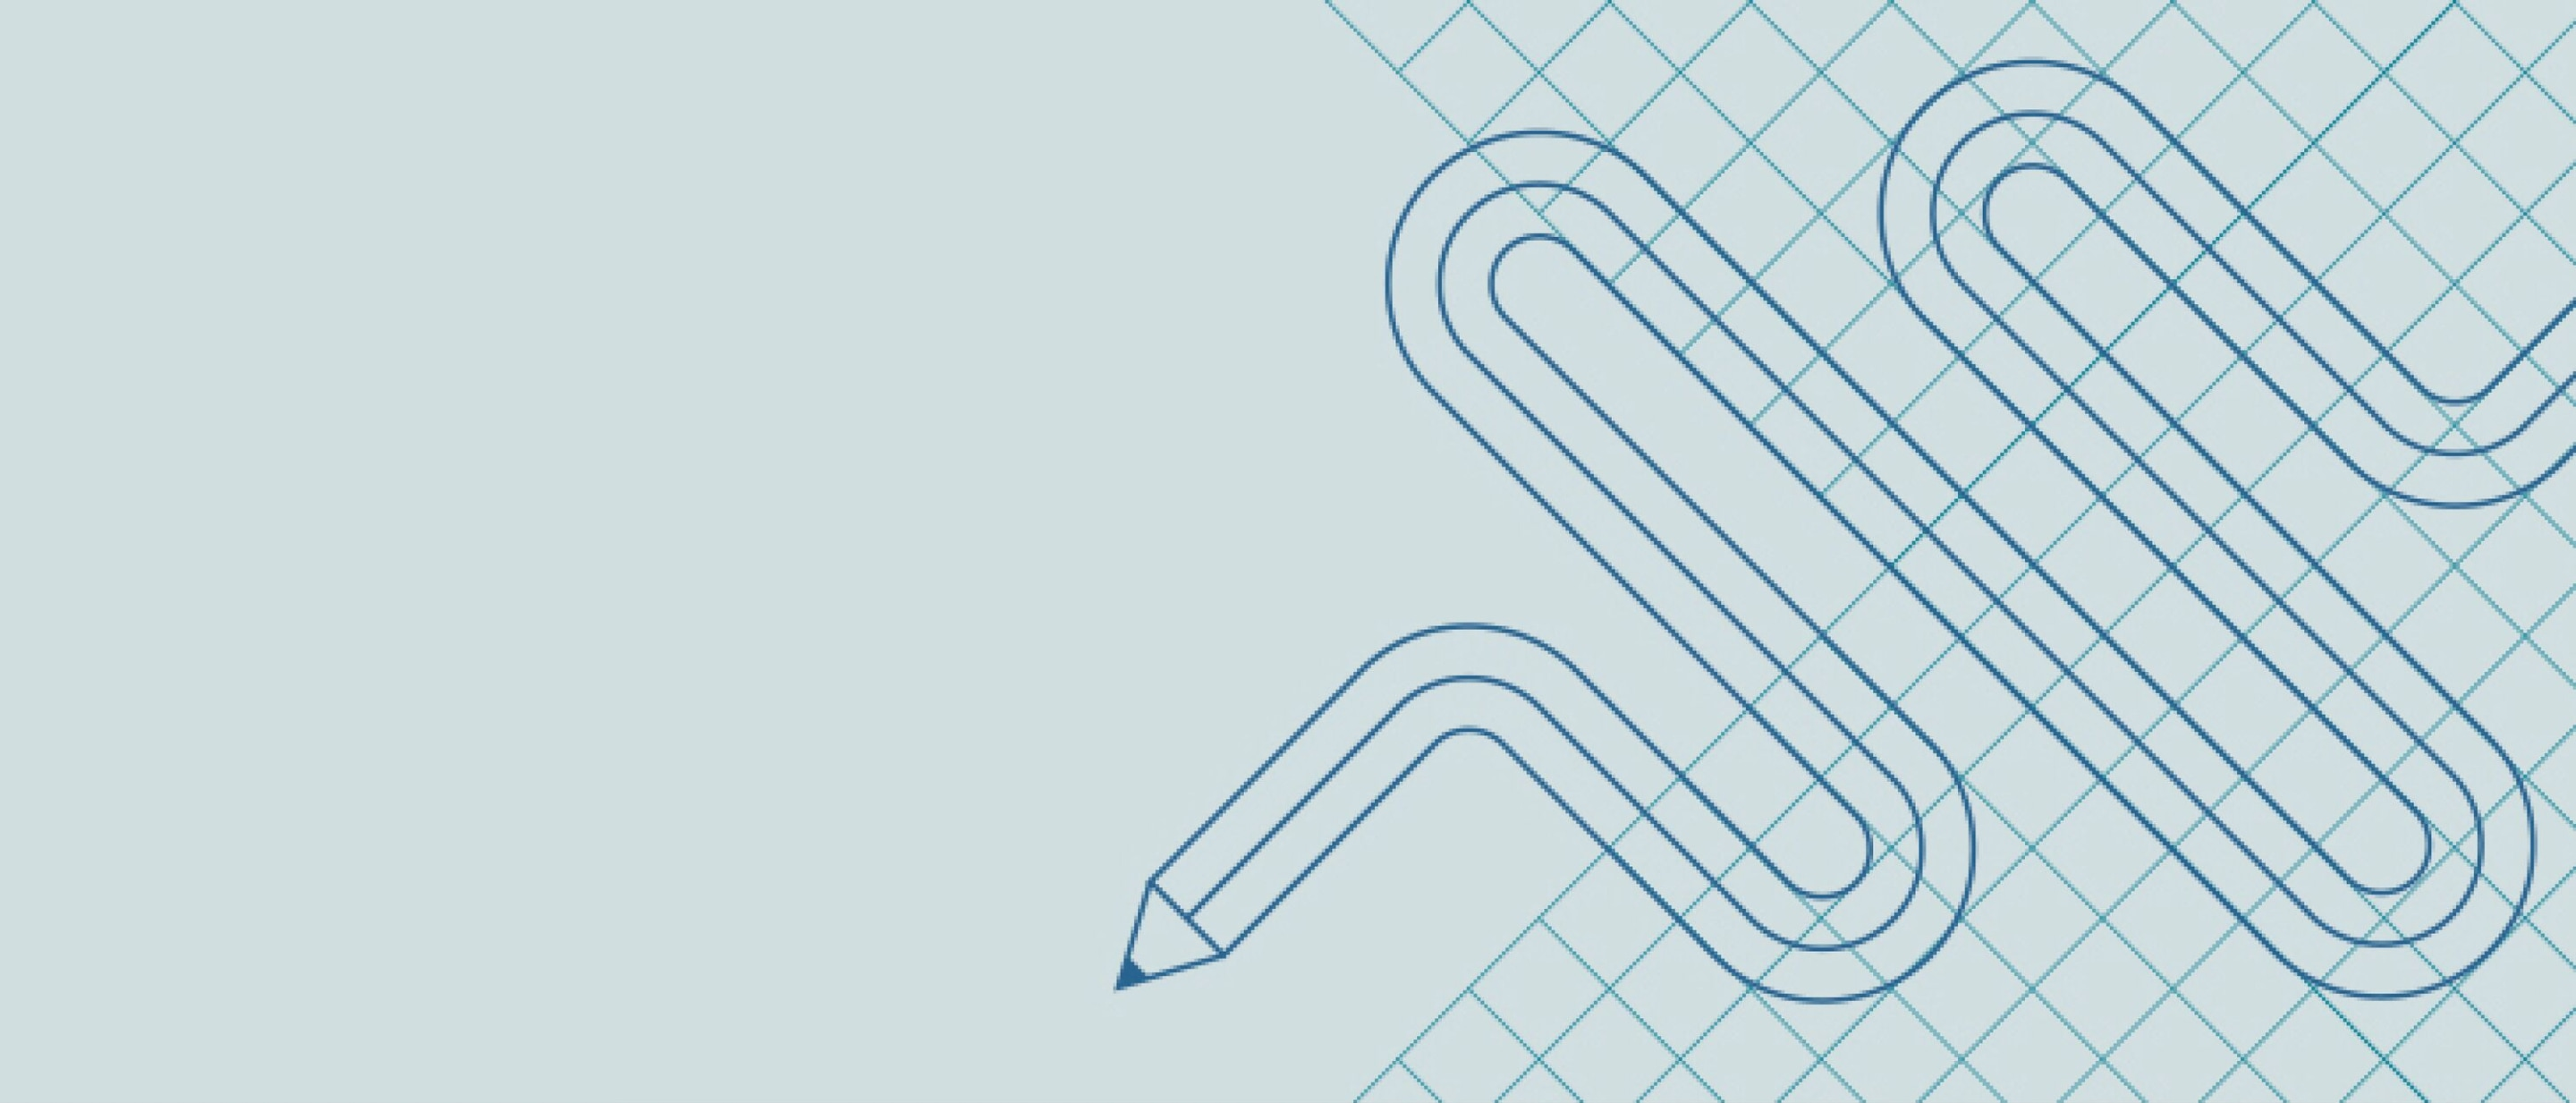 A stylized, blue and purple illustration of a book with pages turning.